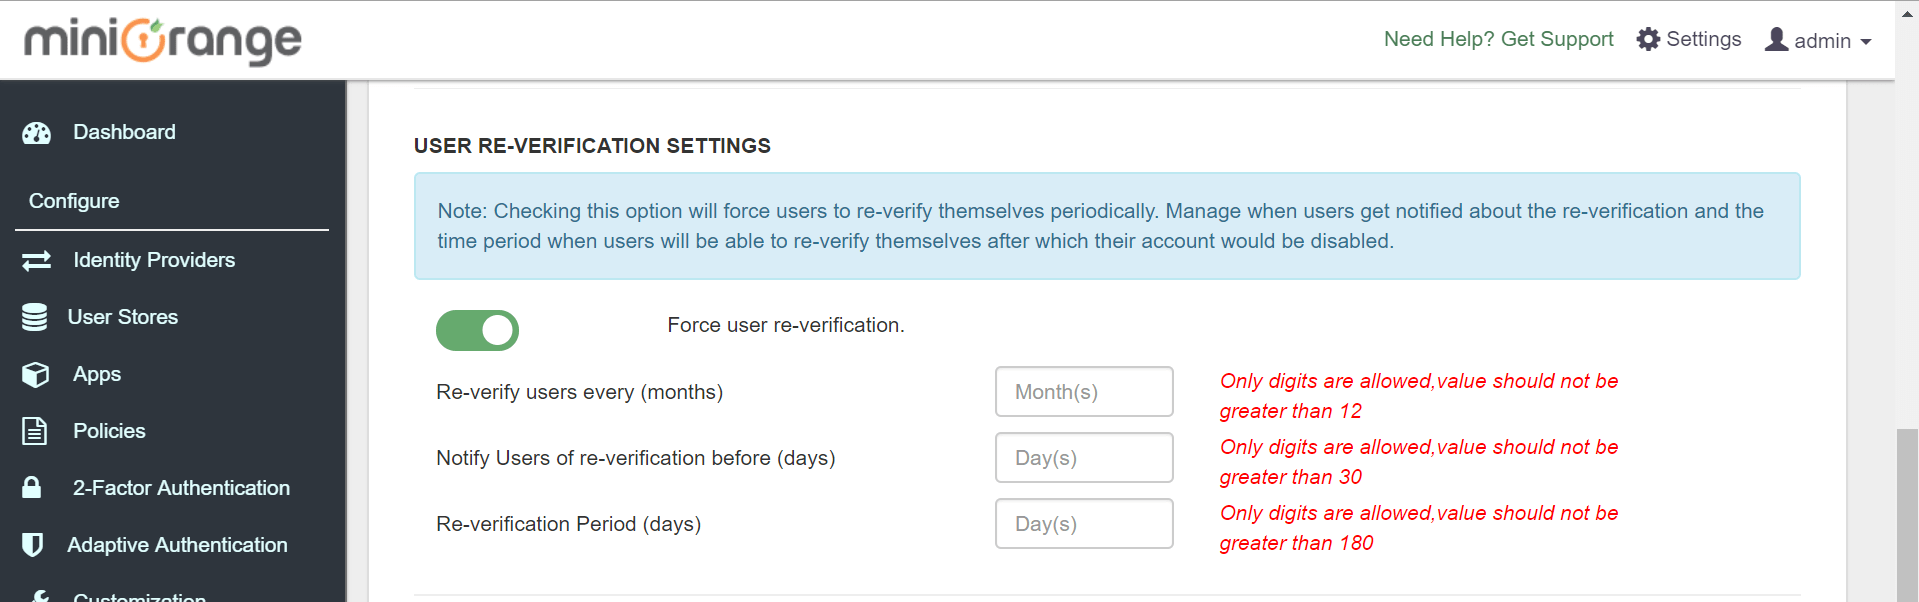 IDP User Re-Verification Settings